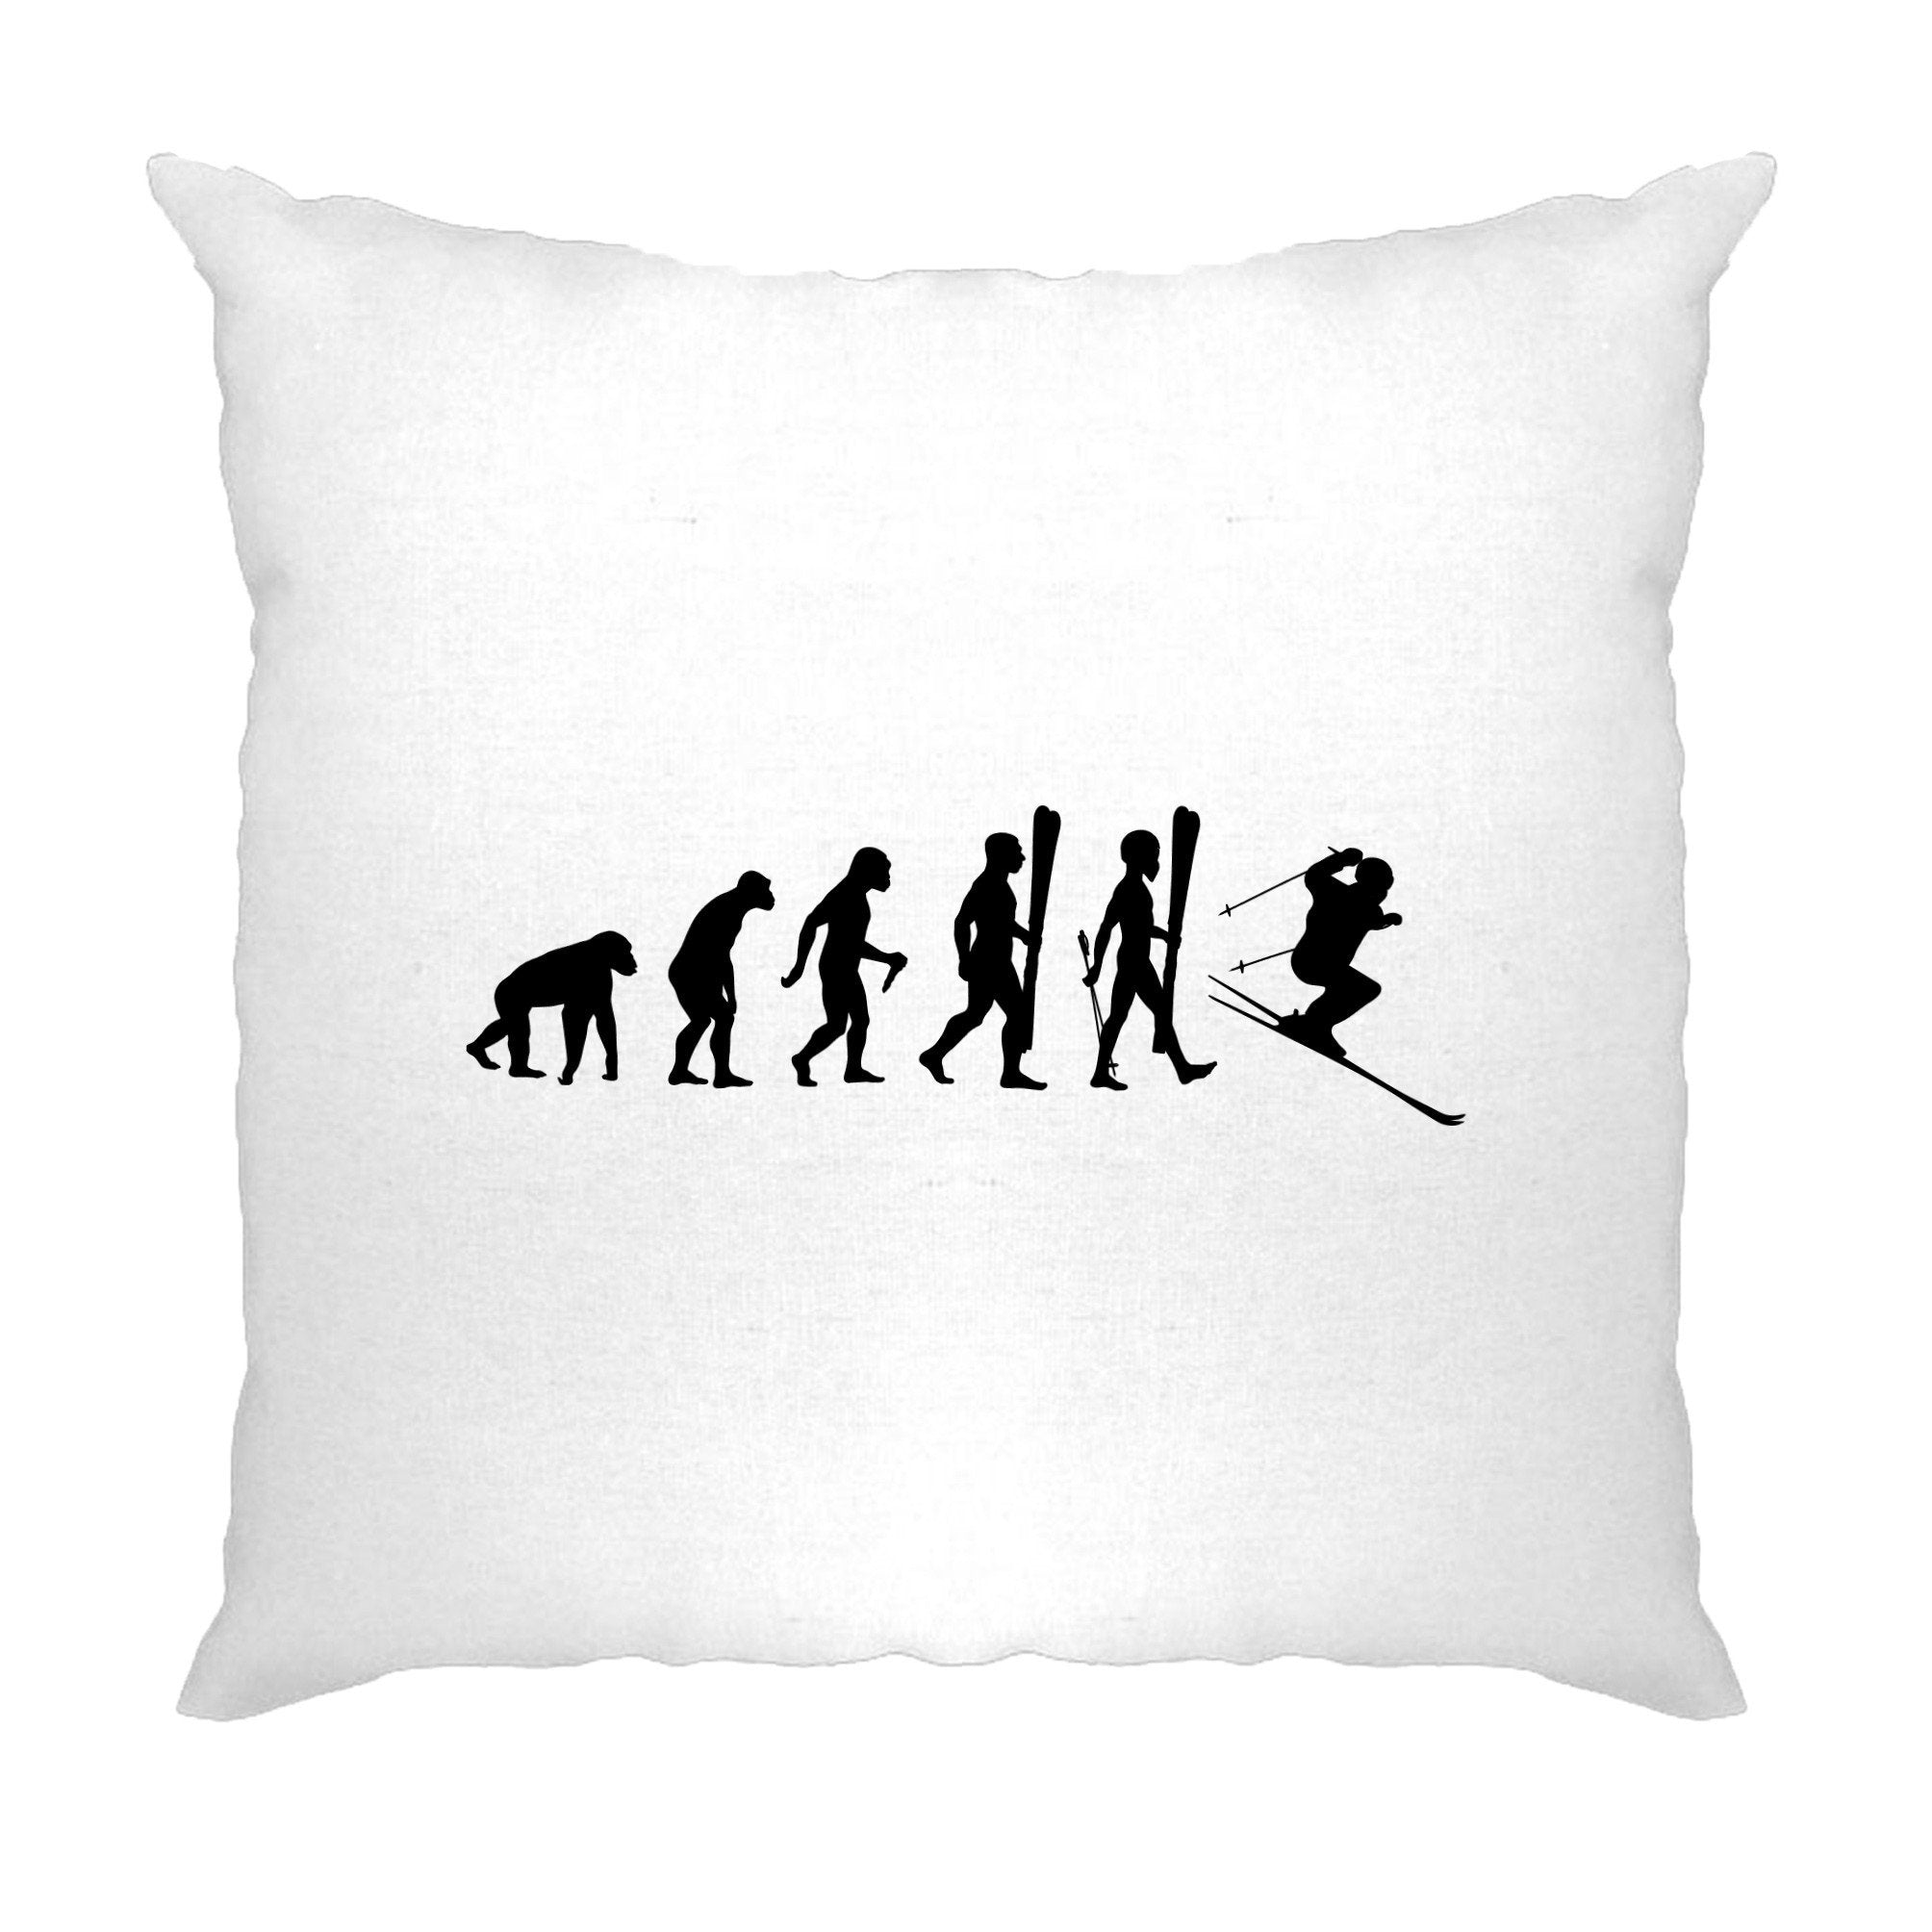 Sports Cushion Cover The Evolution Of A Ski Jumper